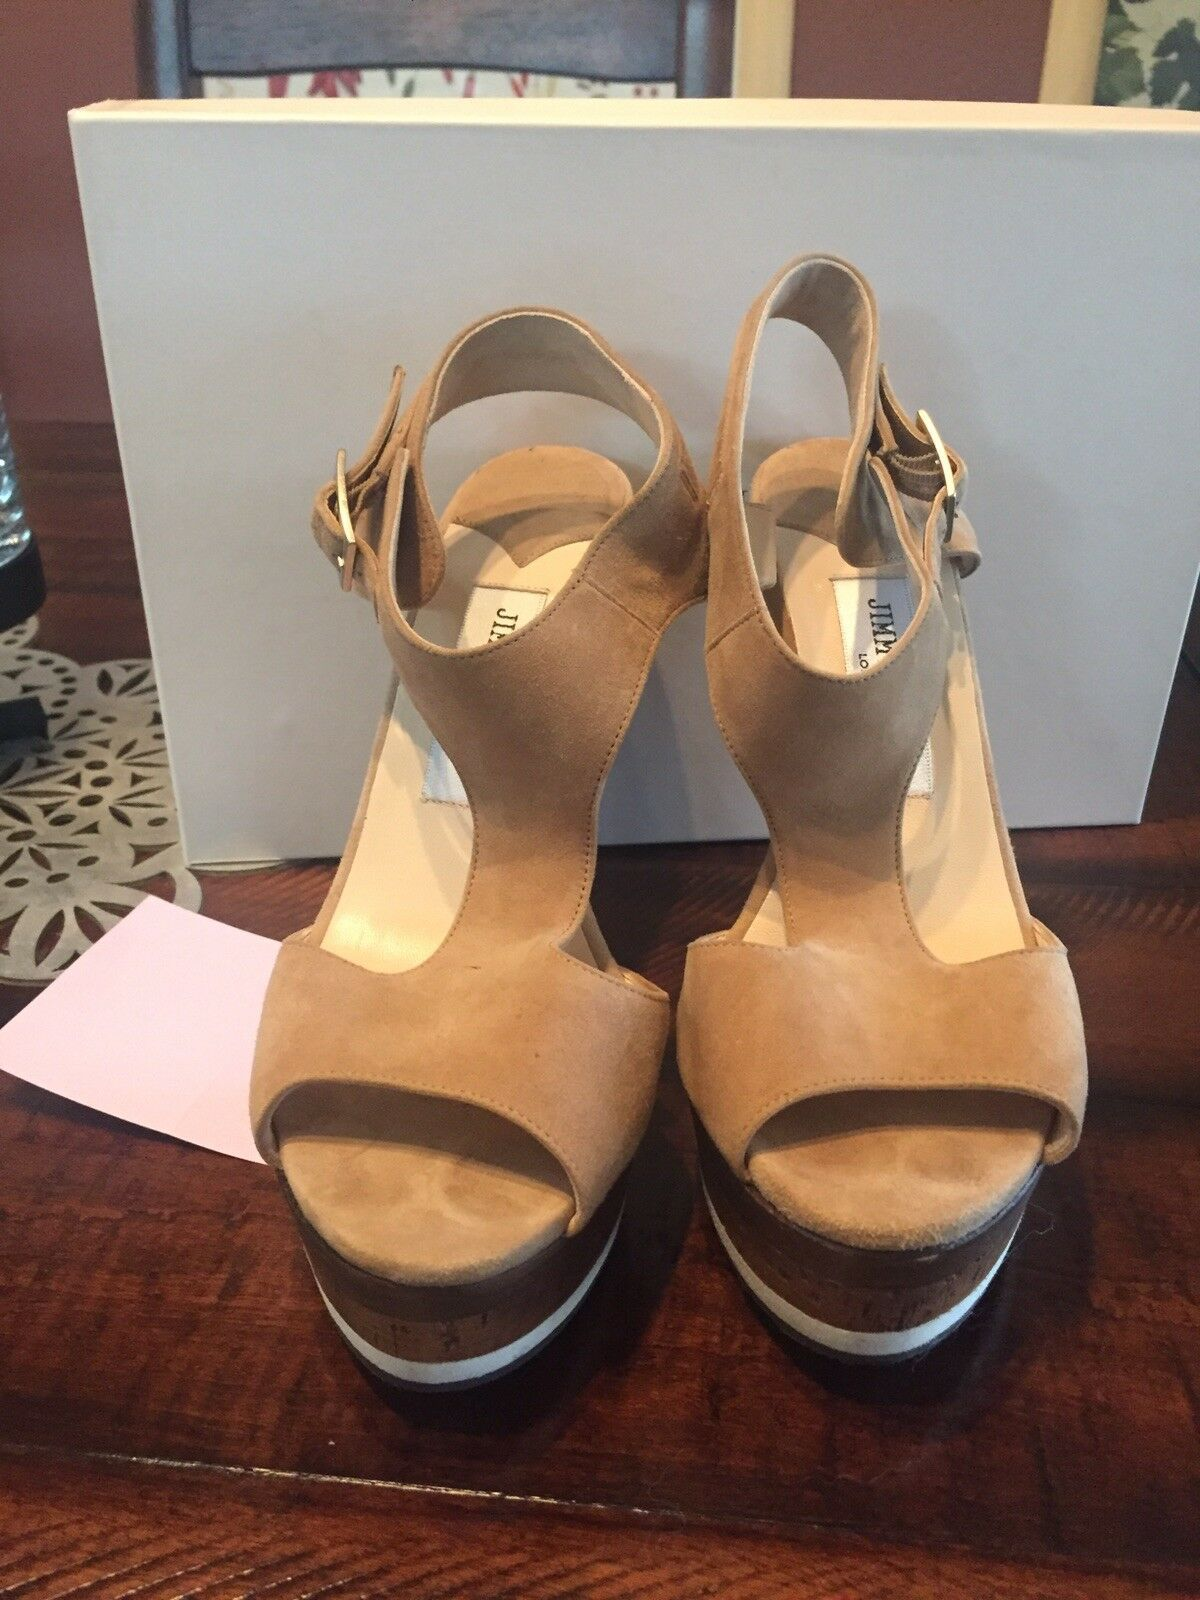 FABULOUS JIMMY CHOO Nixon Sue Almond Suede Platform Sandals, $775! Size 37, 6.5